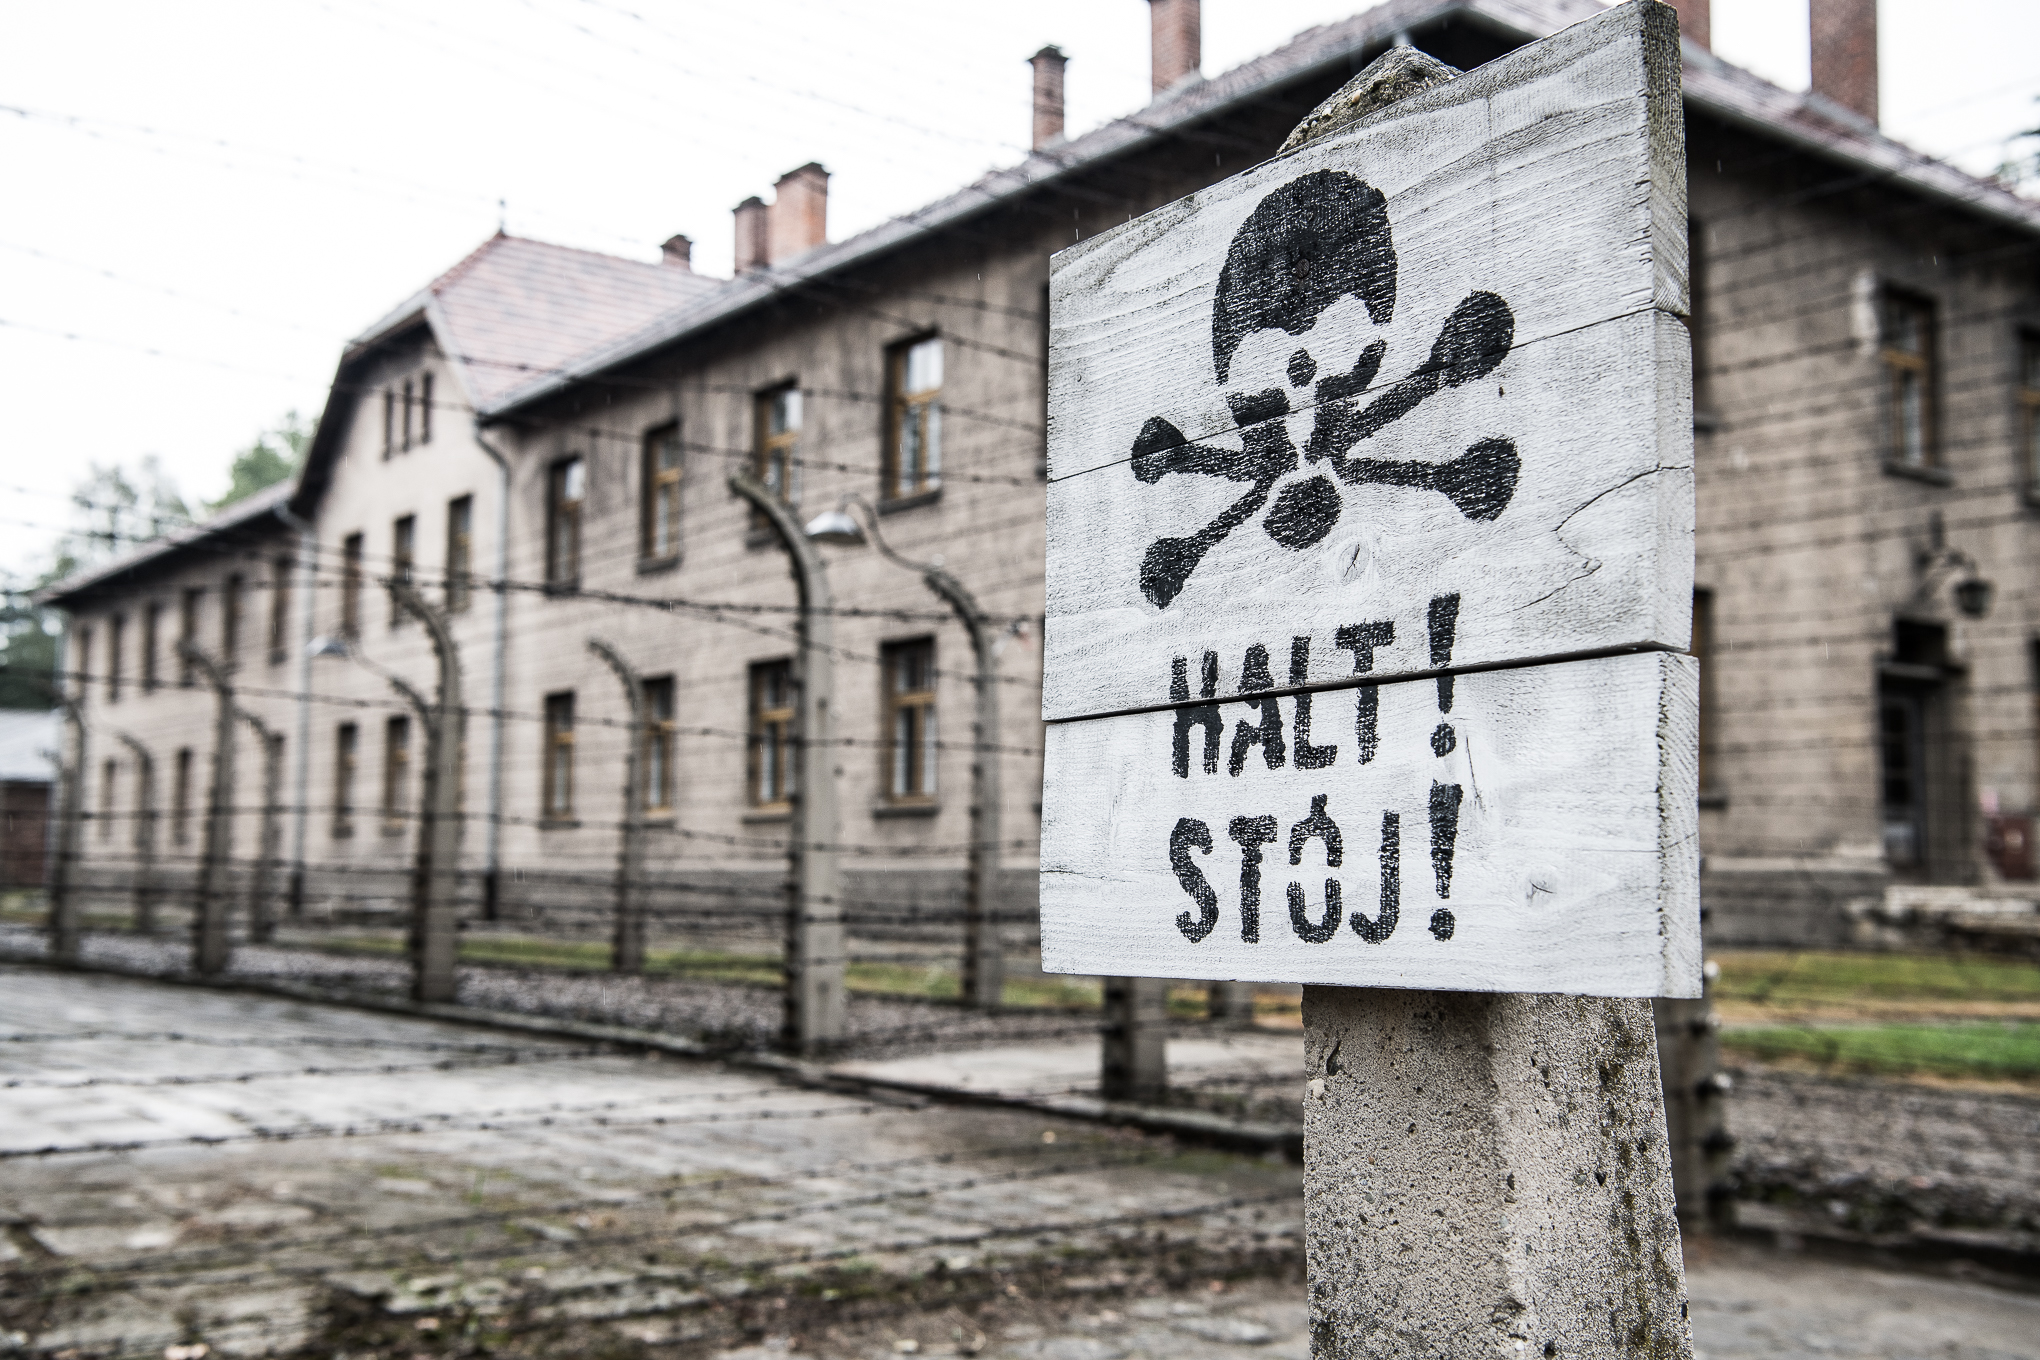 Walking around Auschwitz is a chilling experience